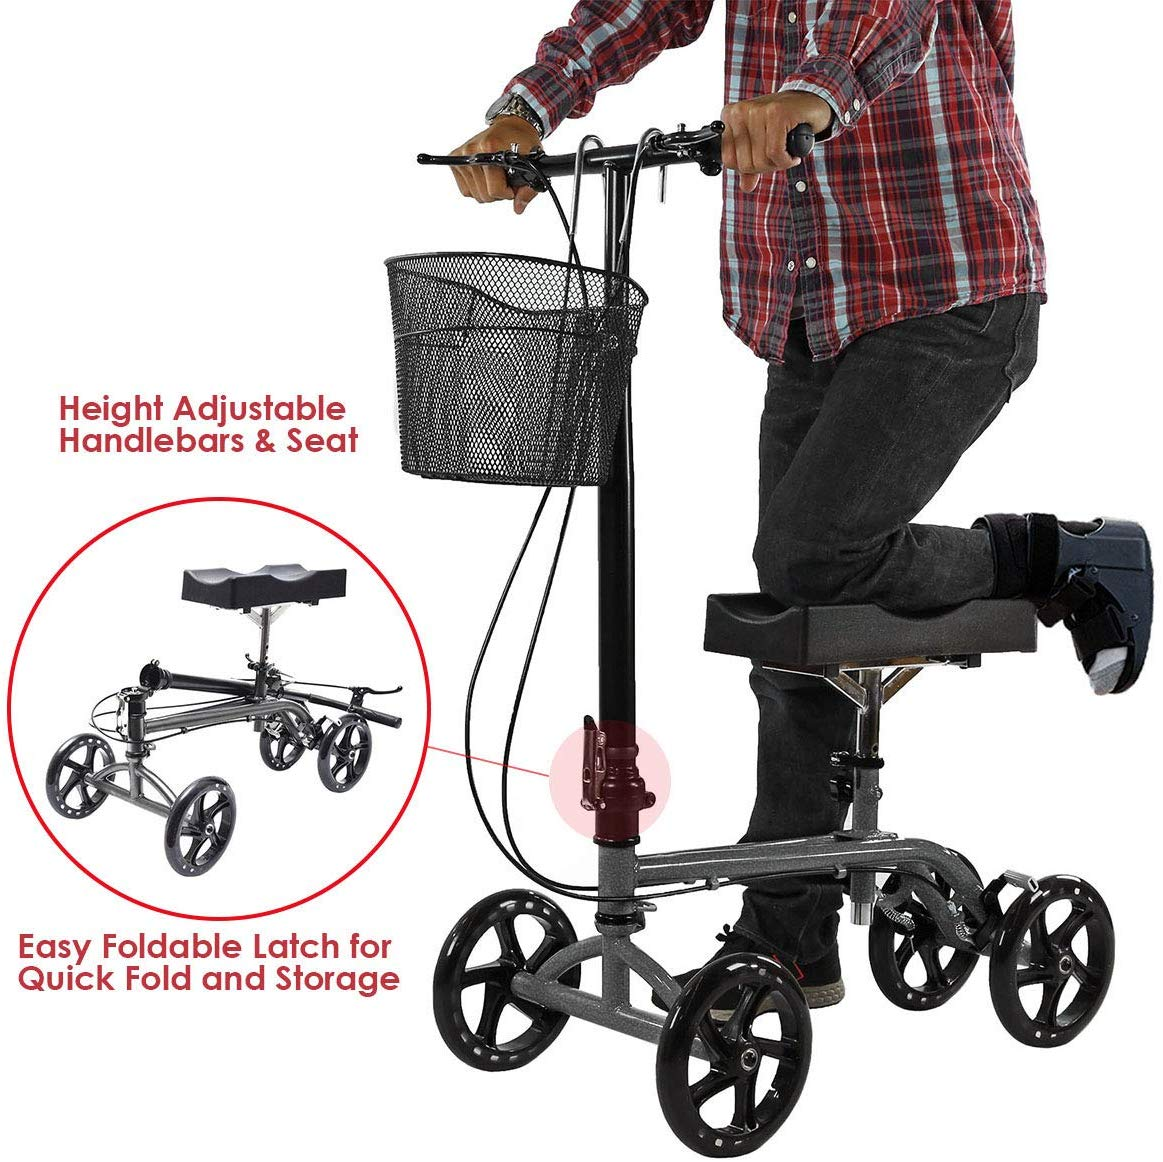 Rent Knee walker in San Diego. Knee Scooter rentals for your broken foot.